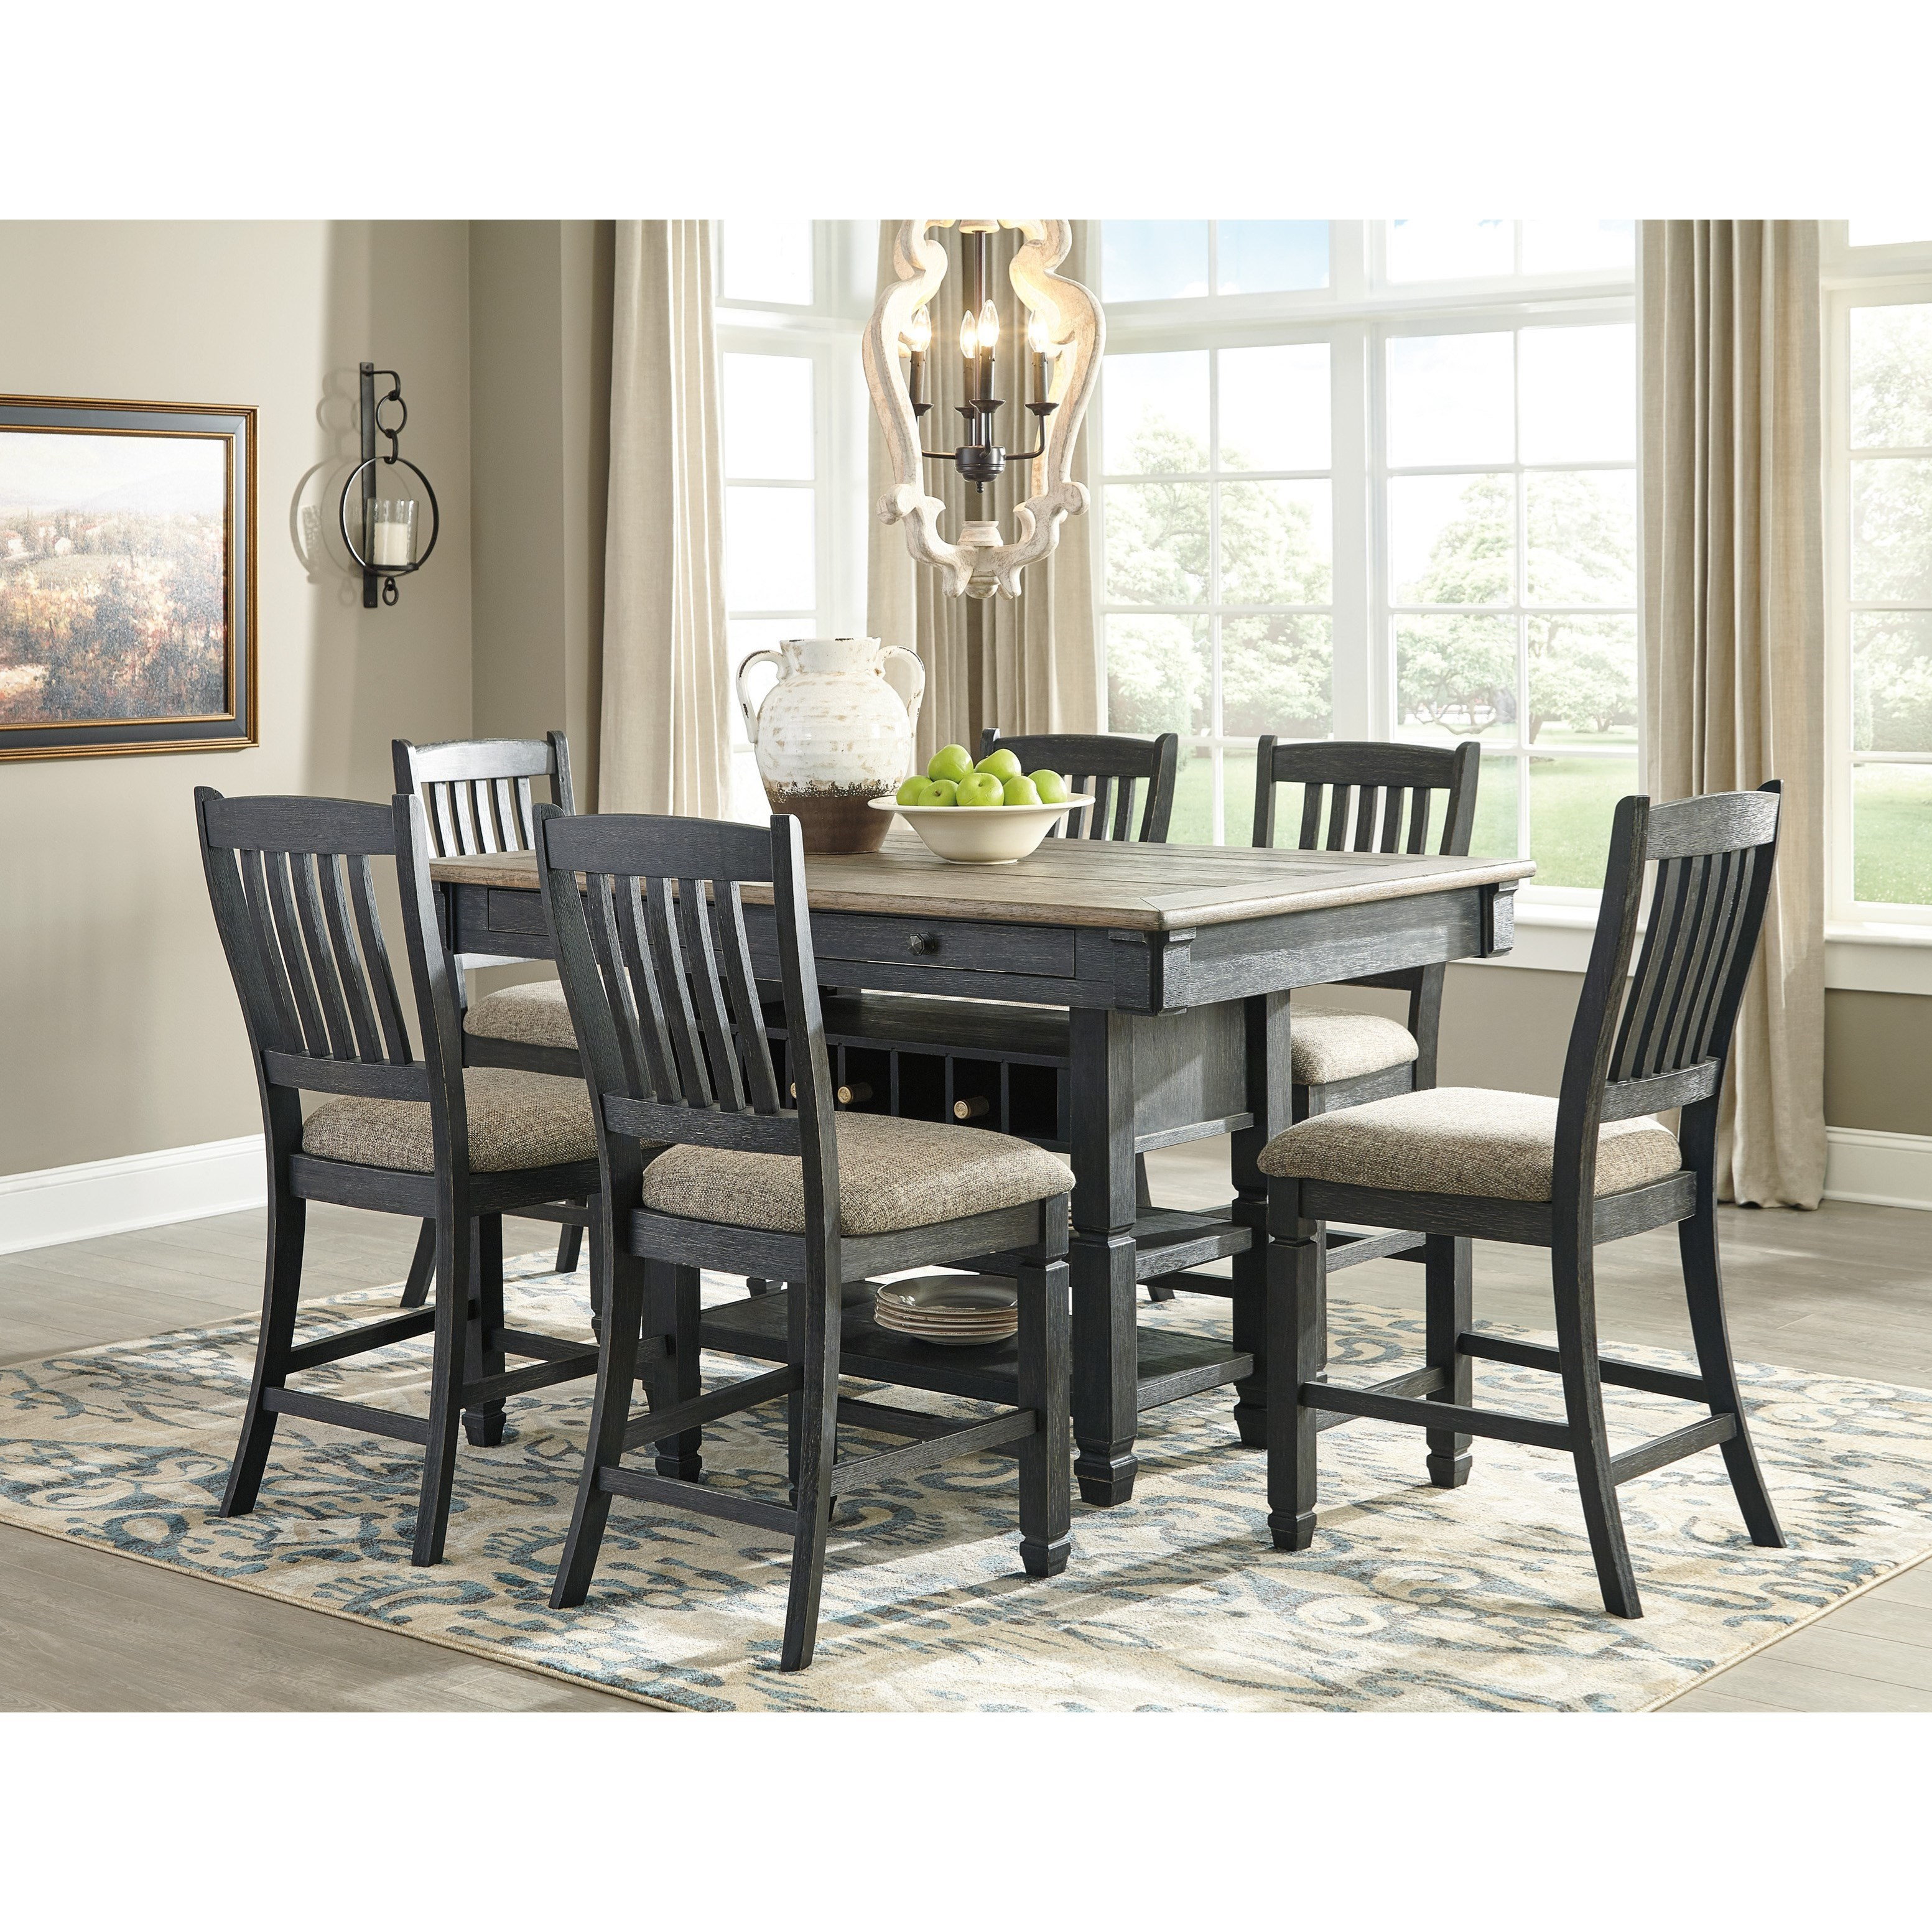 Ashley Furniture Tyler Texas: Northeast Factory Direct - Cleveland